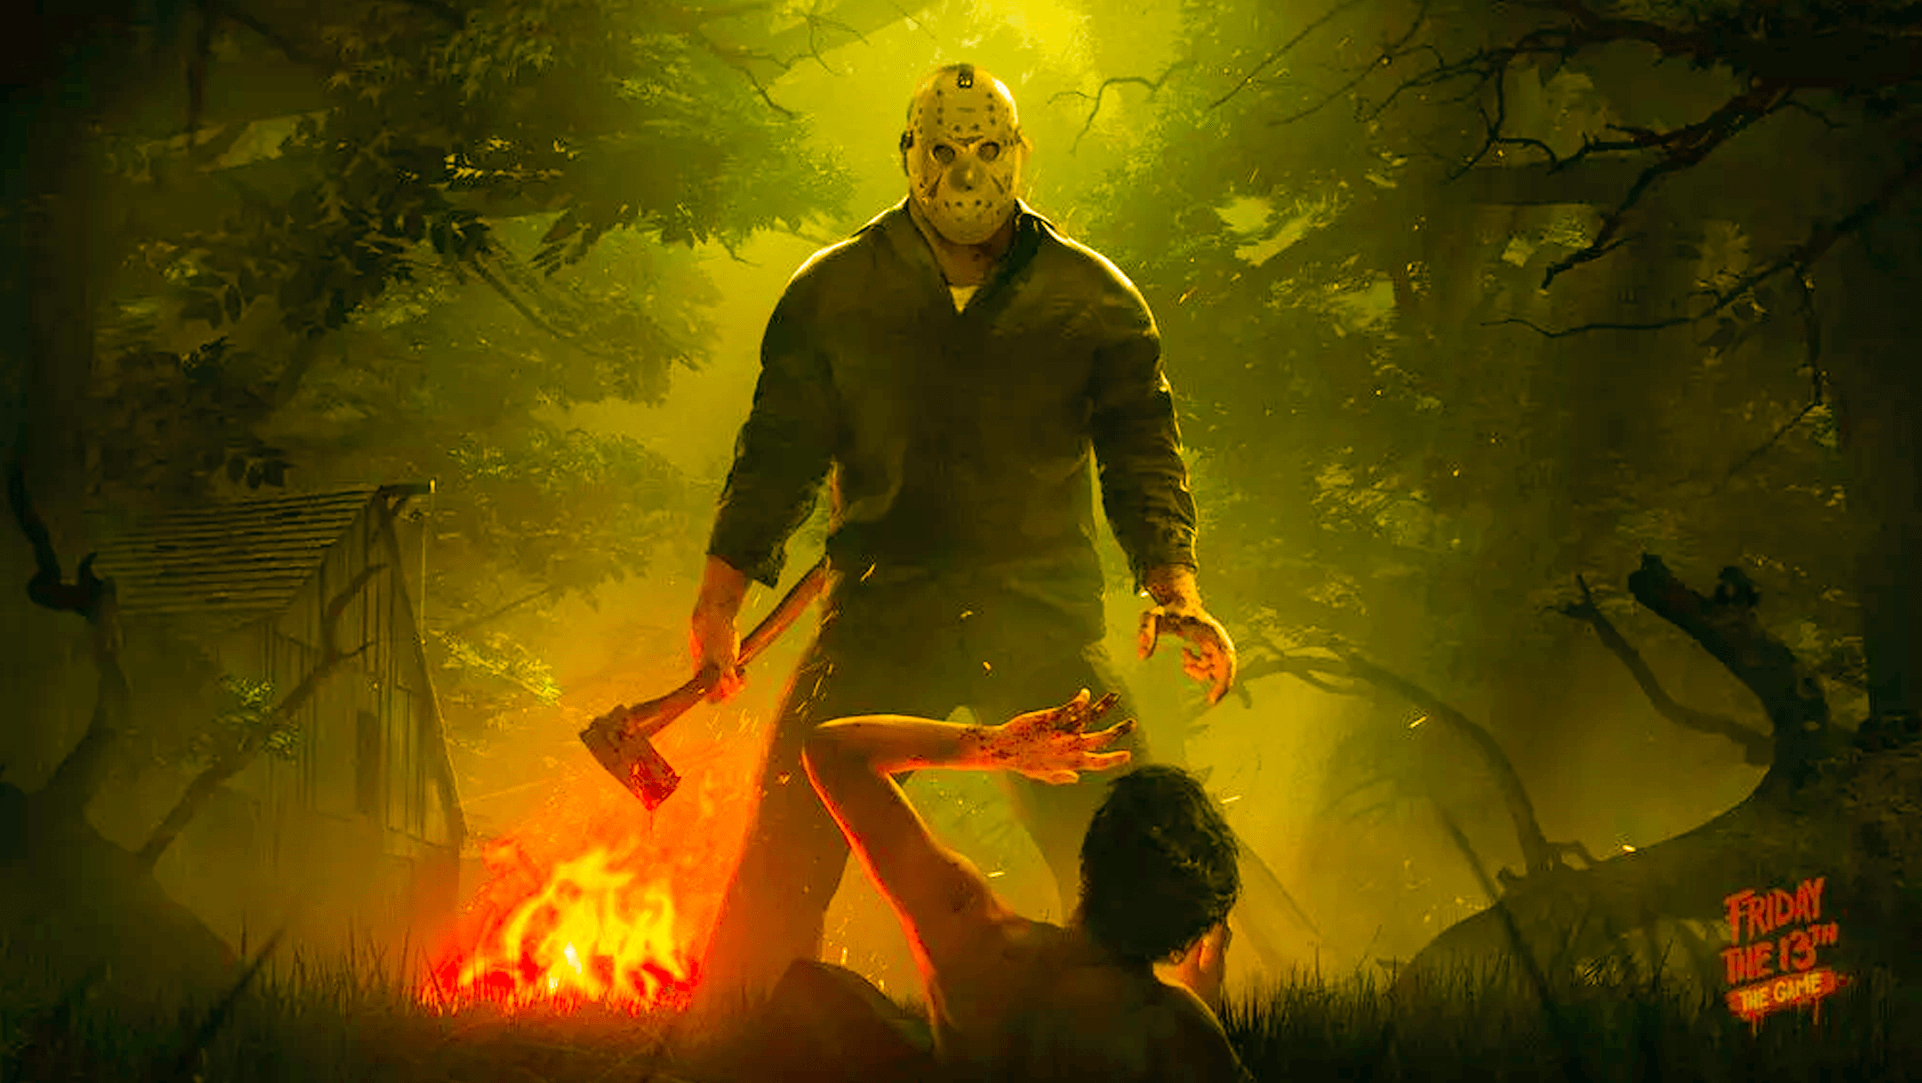 Friday The 13th Live Wallpaper Posted By Zoey Cunningham